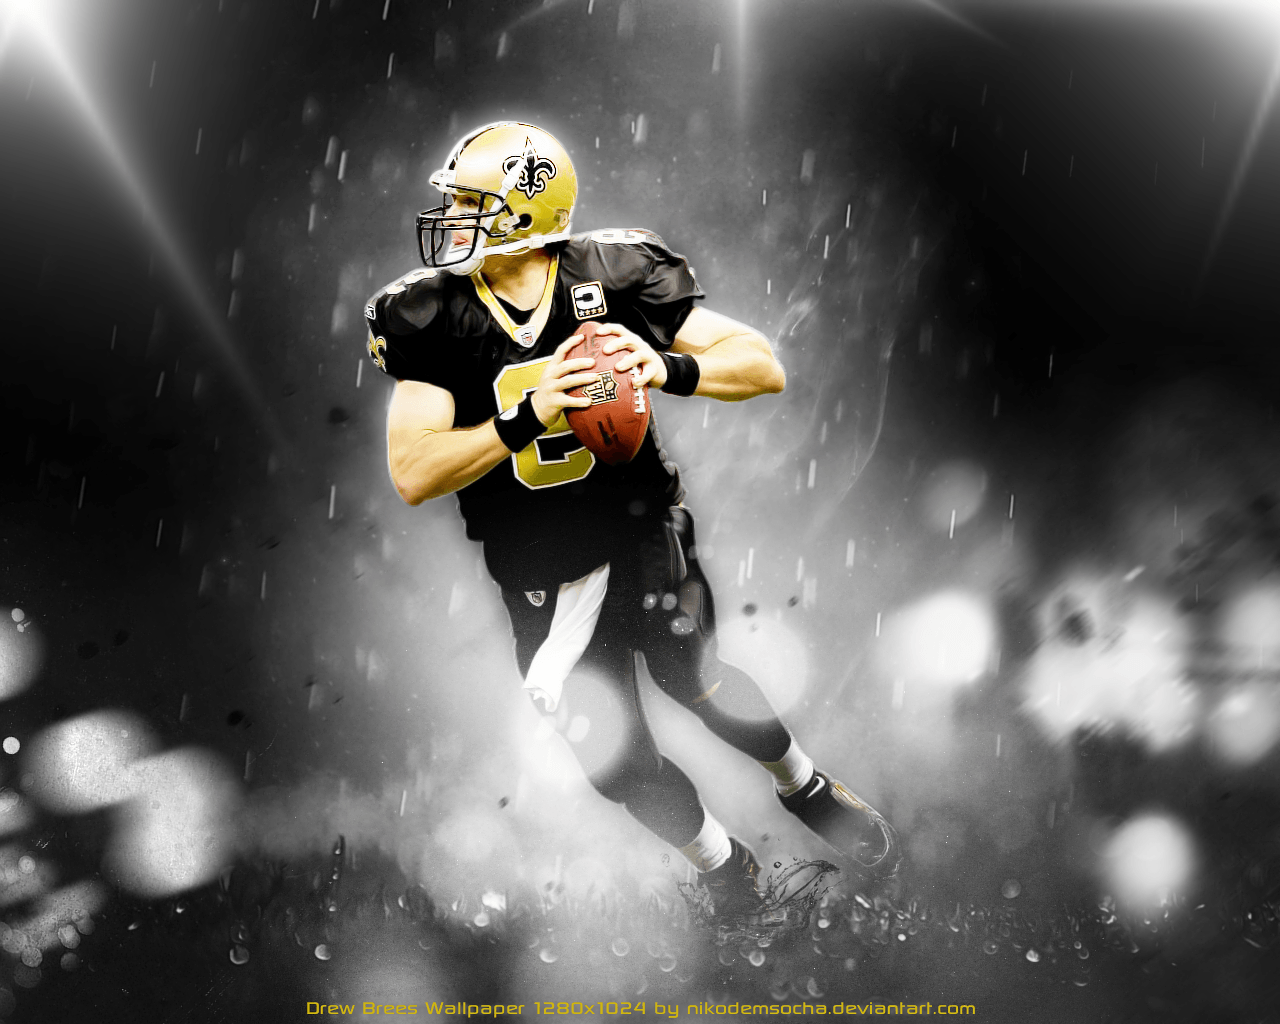 Drew Brees Wallpapers Top Free Drew Brees Backgrounds Wallpaperaccess